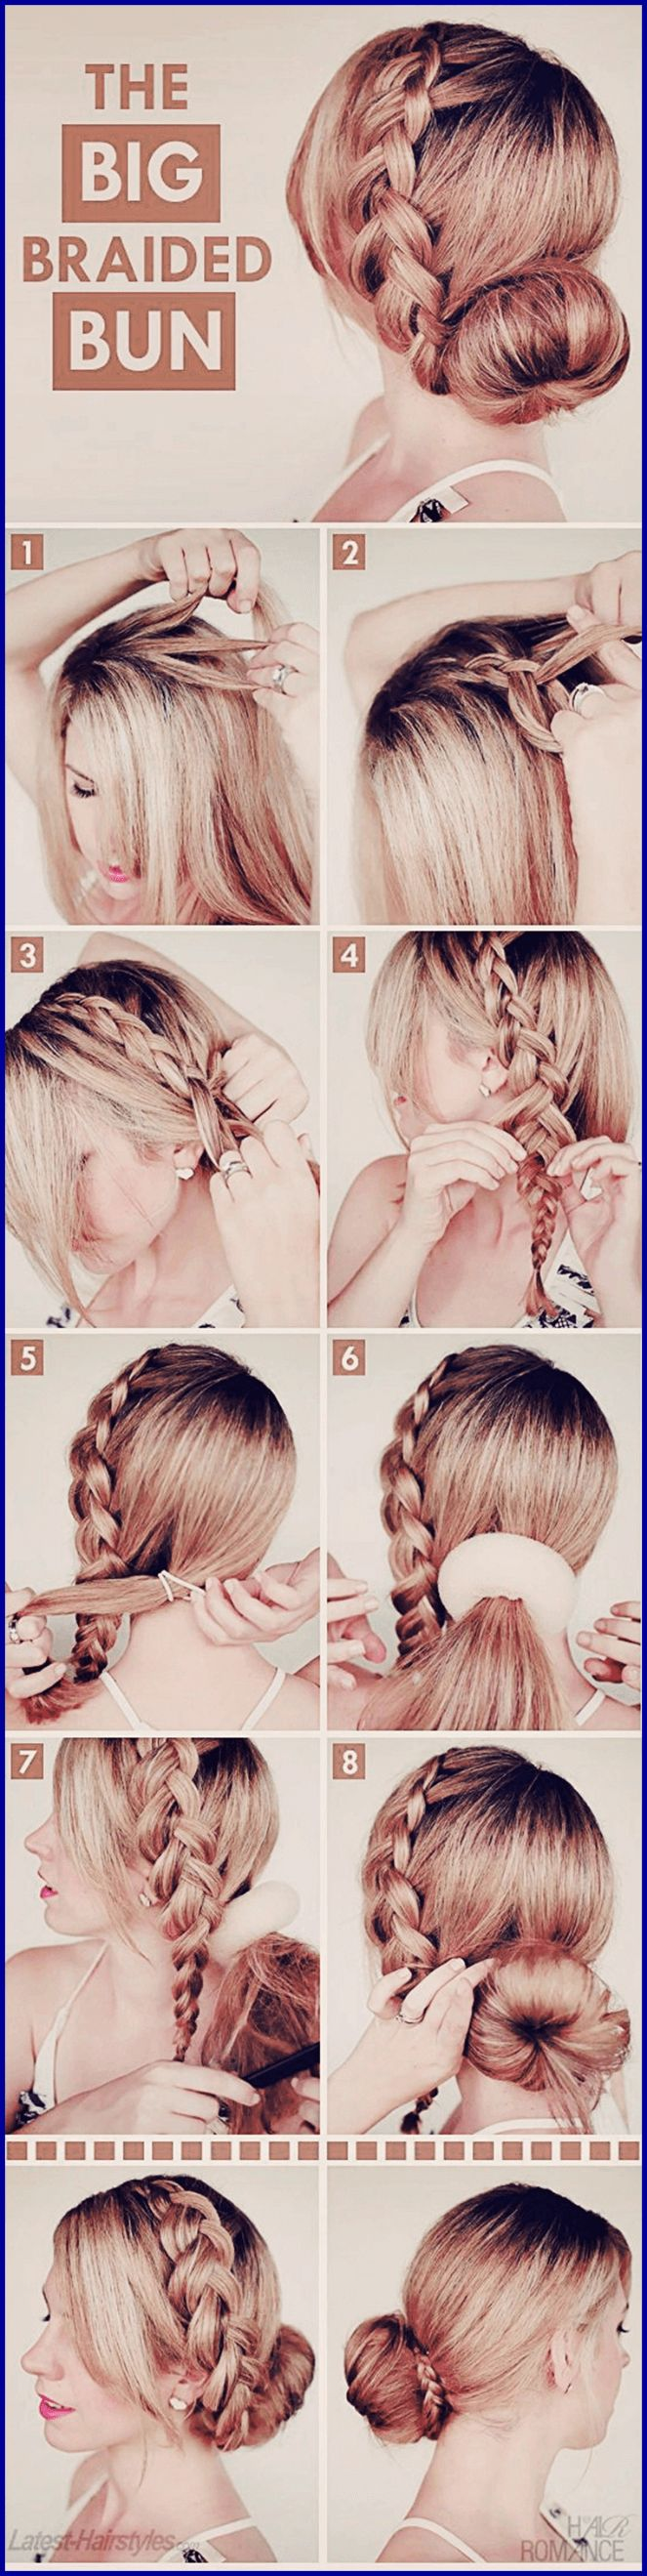 Steps in achieving the big braided bun